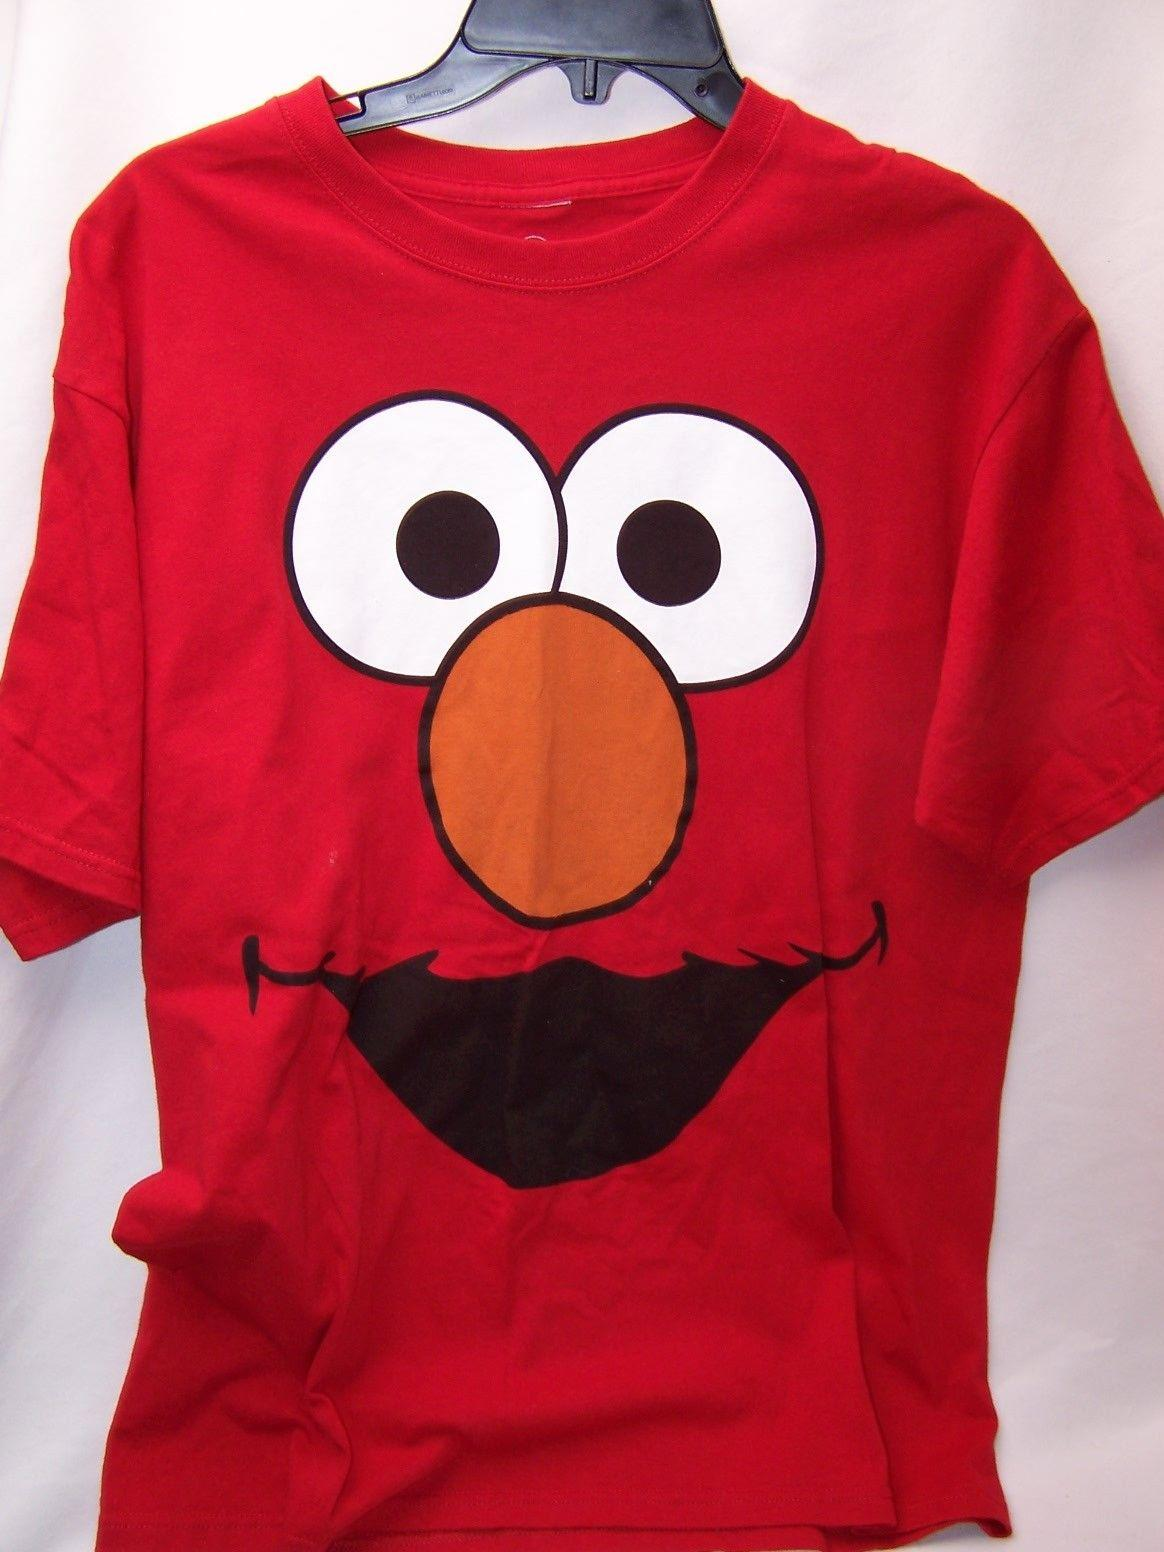 5cdb10435 Official Sesame Street Oscar Smile Face Adult T Shirt ELMO LARGE Men Women  Unisex Fashion Tshirt Cool T Shirts For Boys Online Cool Team Shirts From  ...